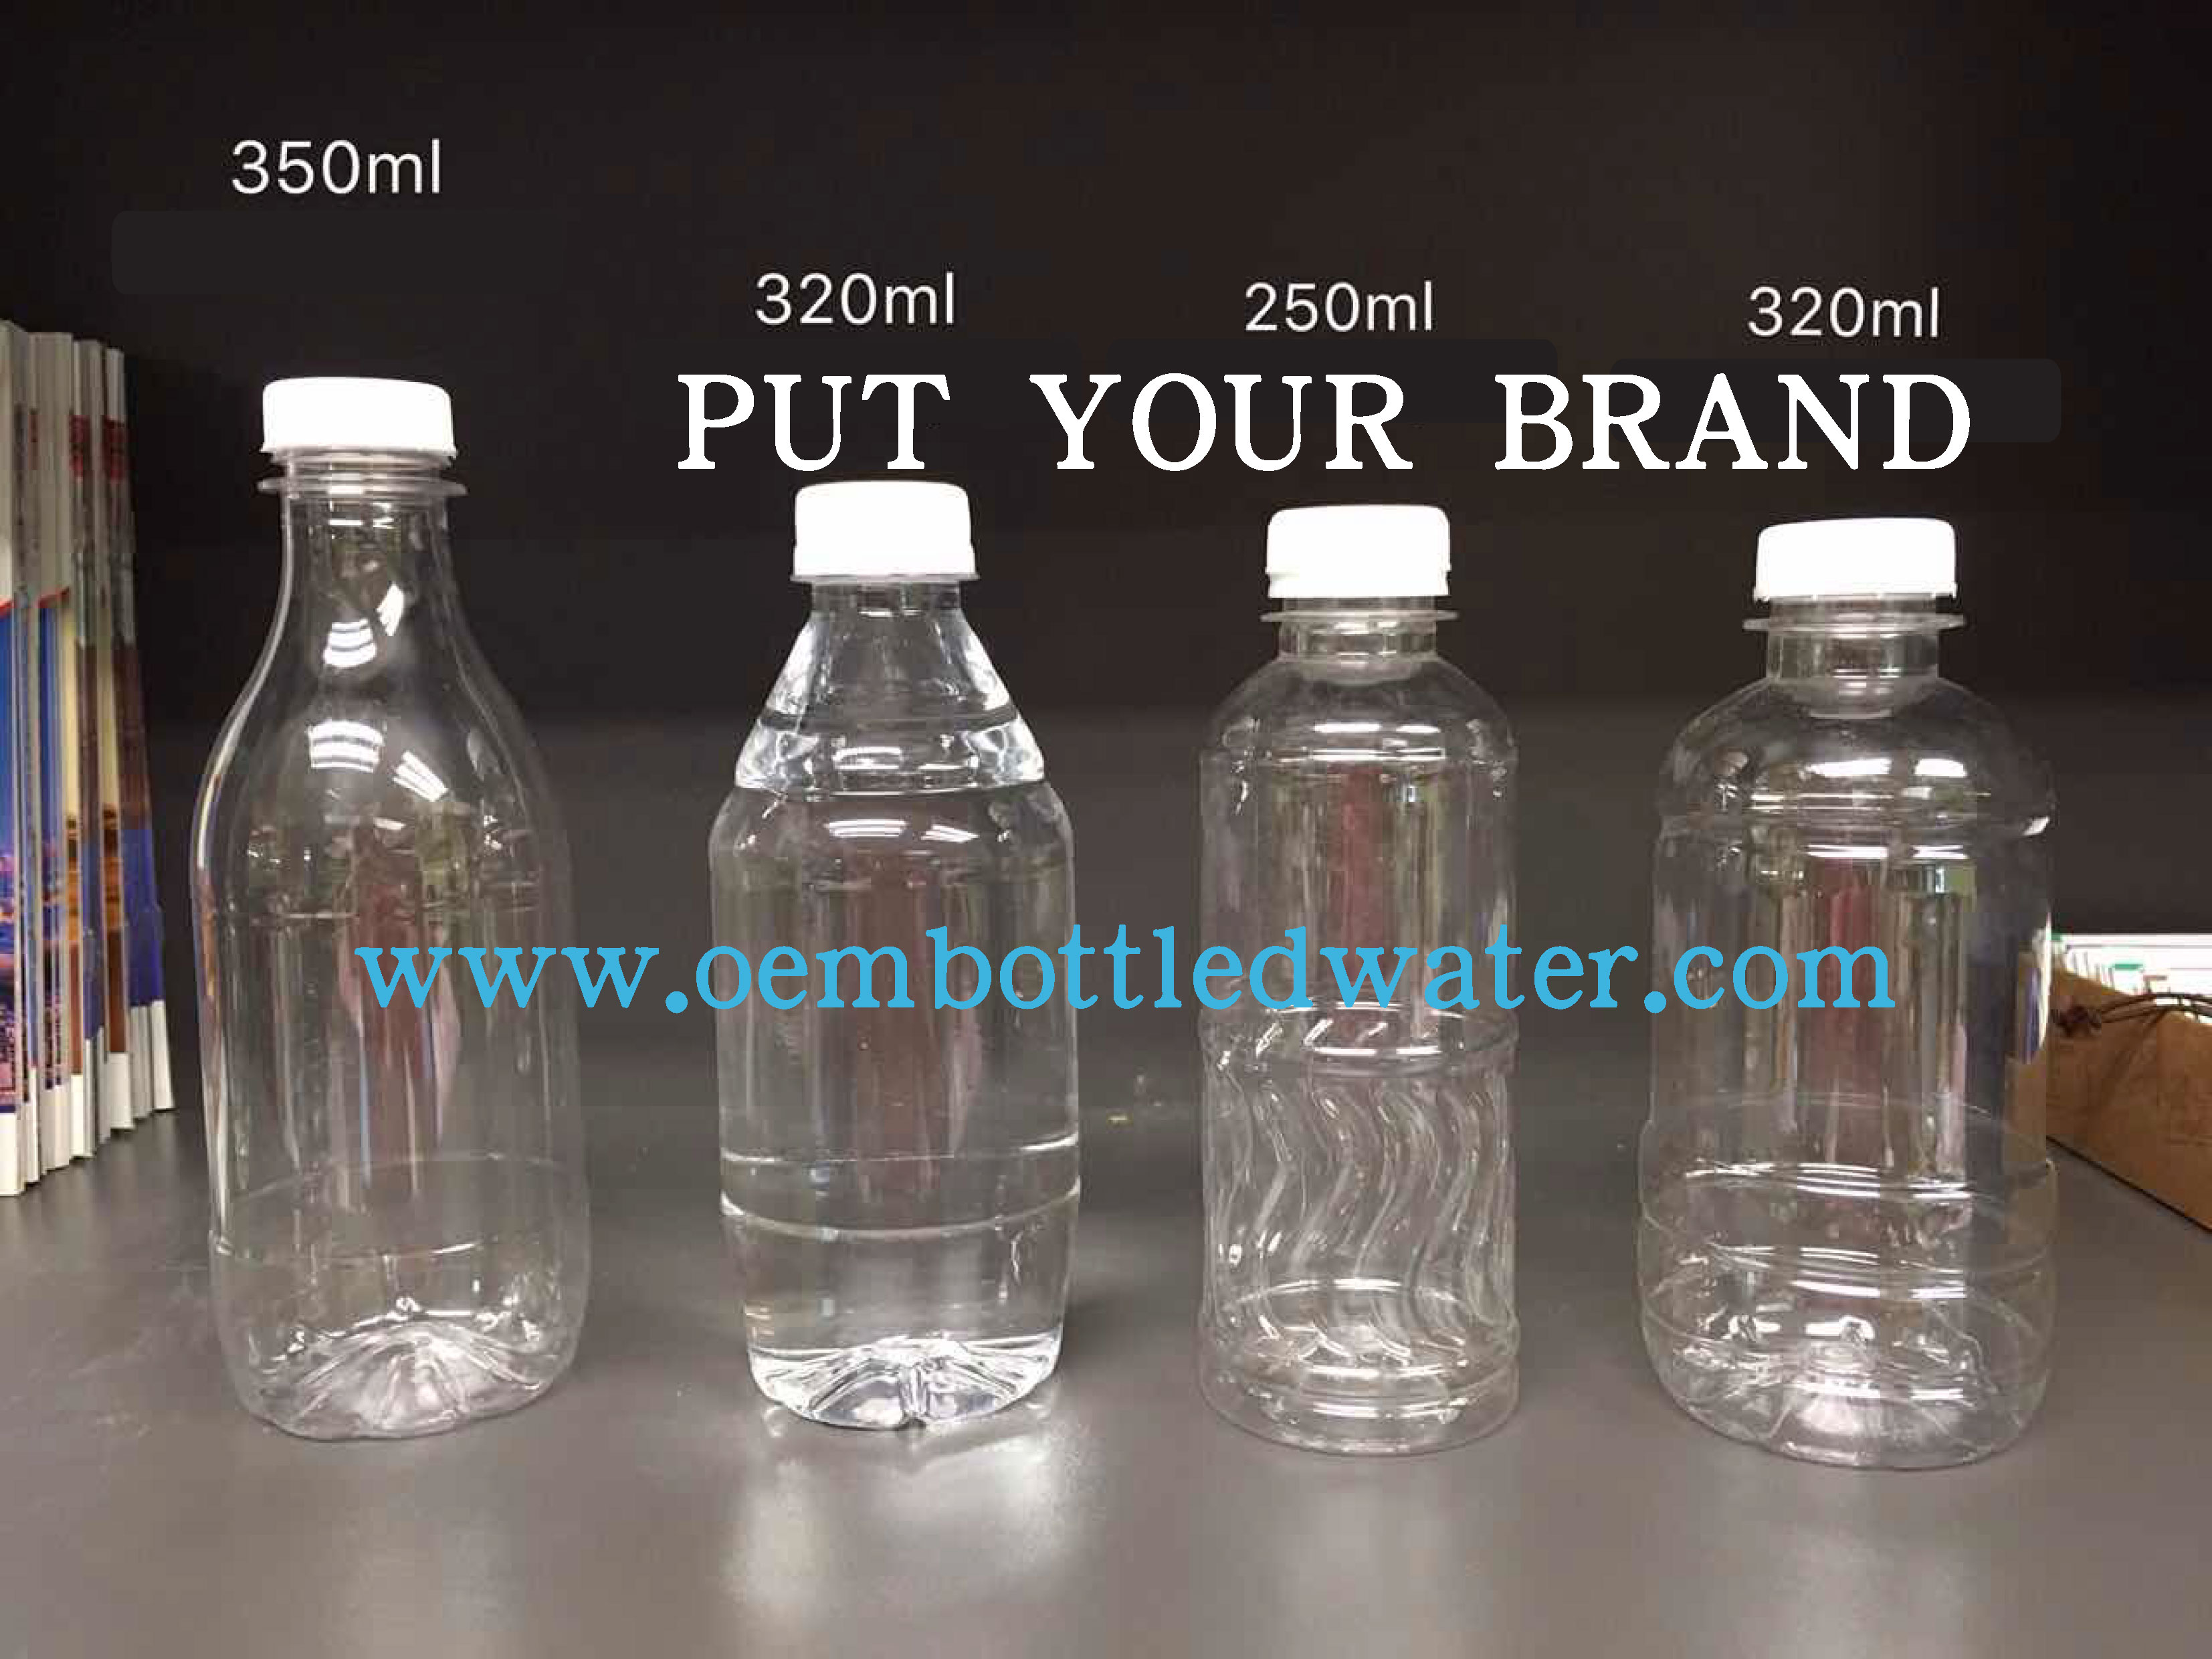 Private Label Bottled water | OEM Bottled Water Malaysia